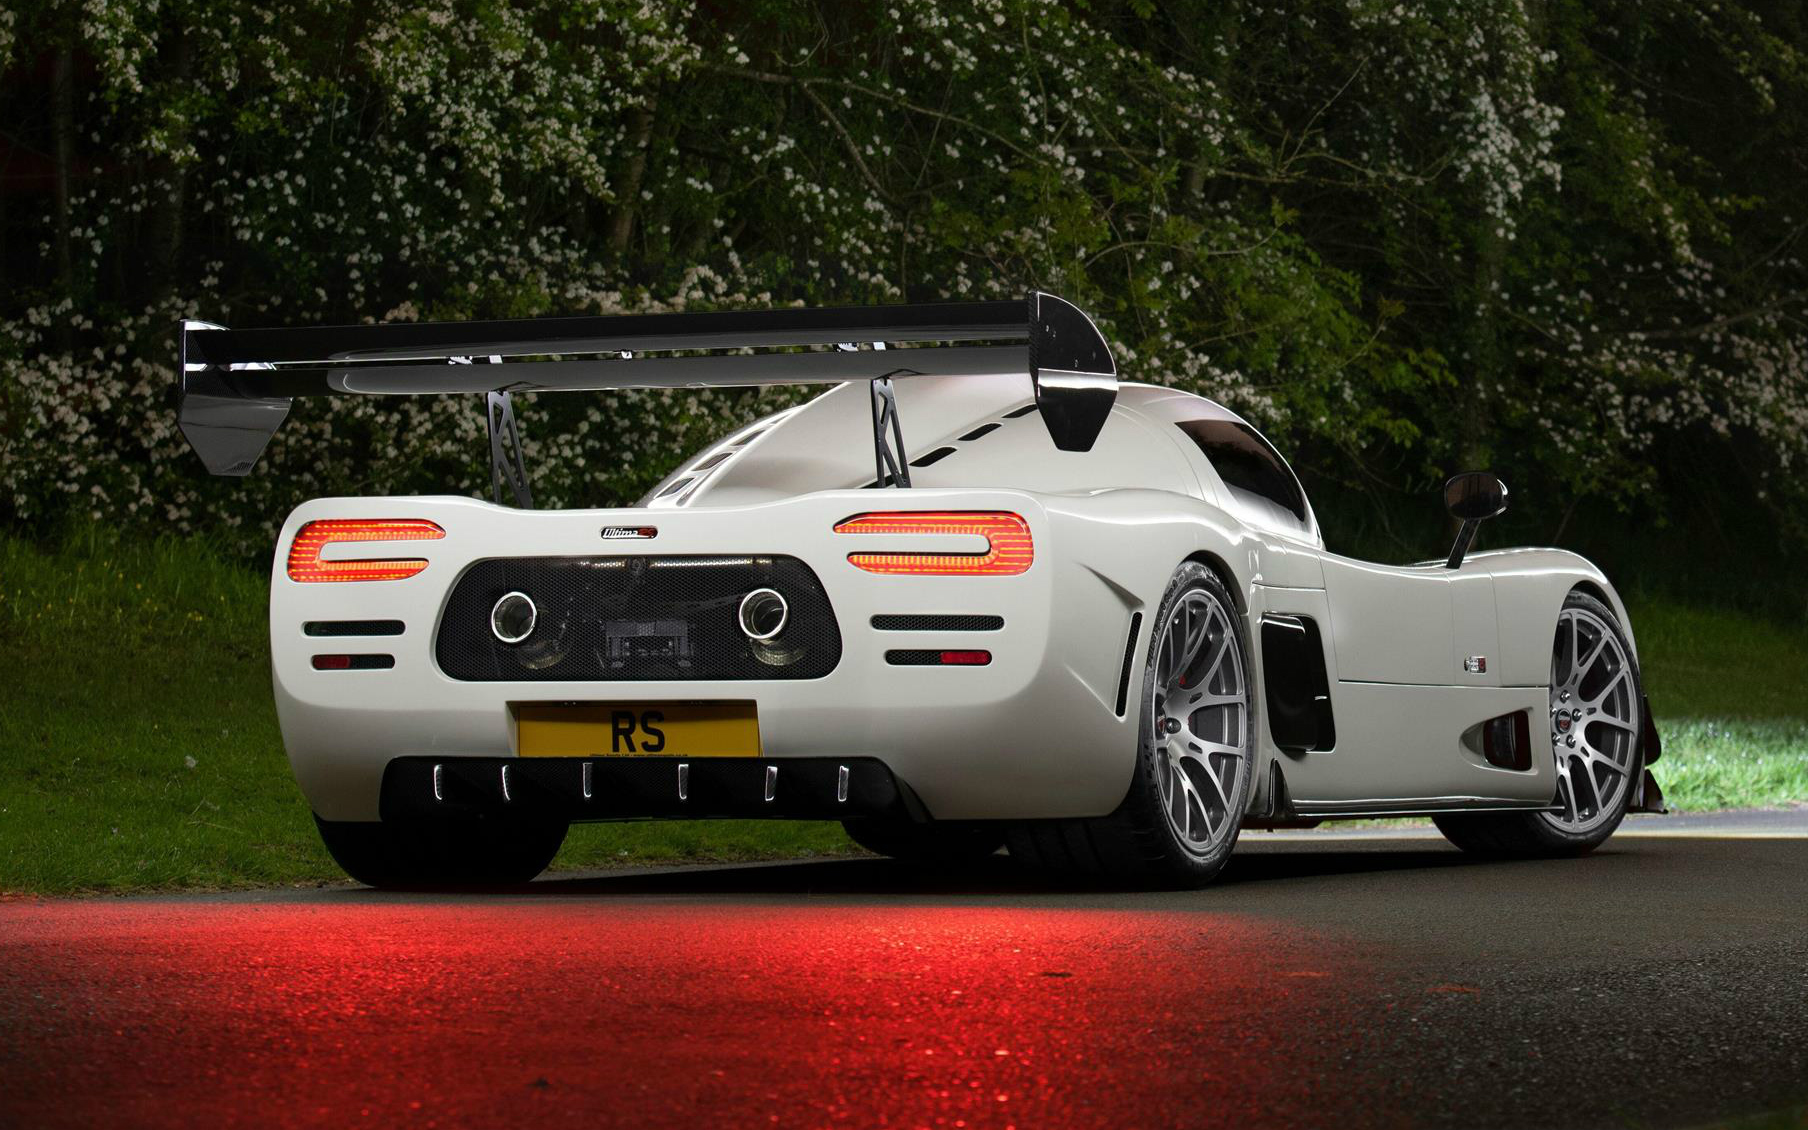 The New Ultima RS Supercar